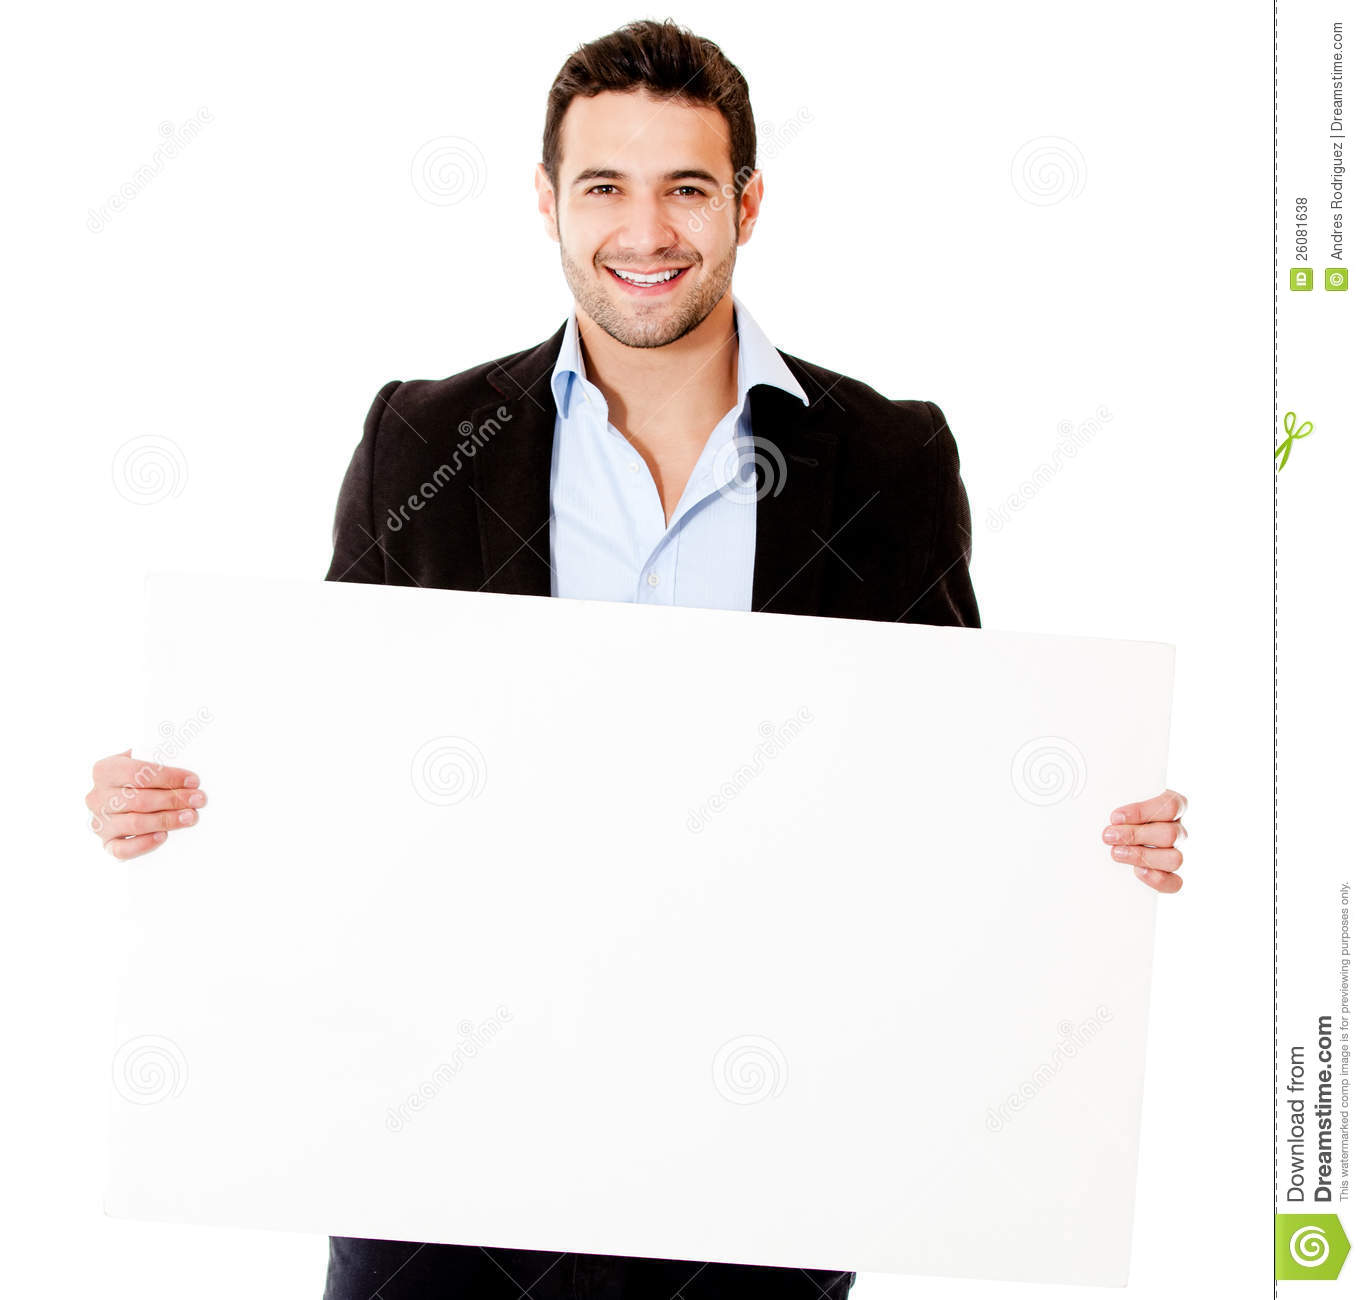 Casual Business Man With A Banner Royalty Free Stock Photos   Image